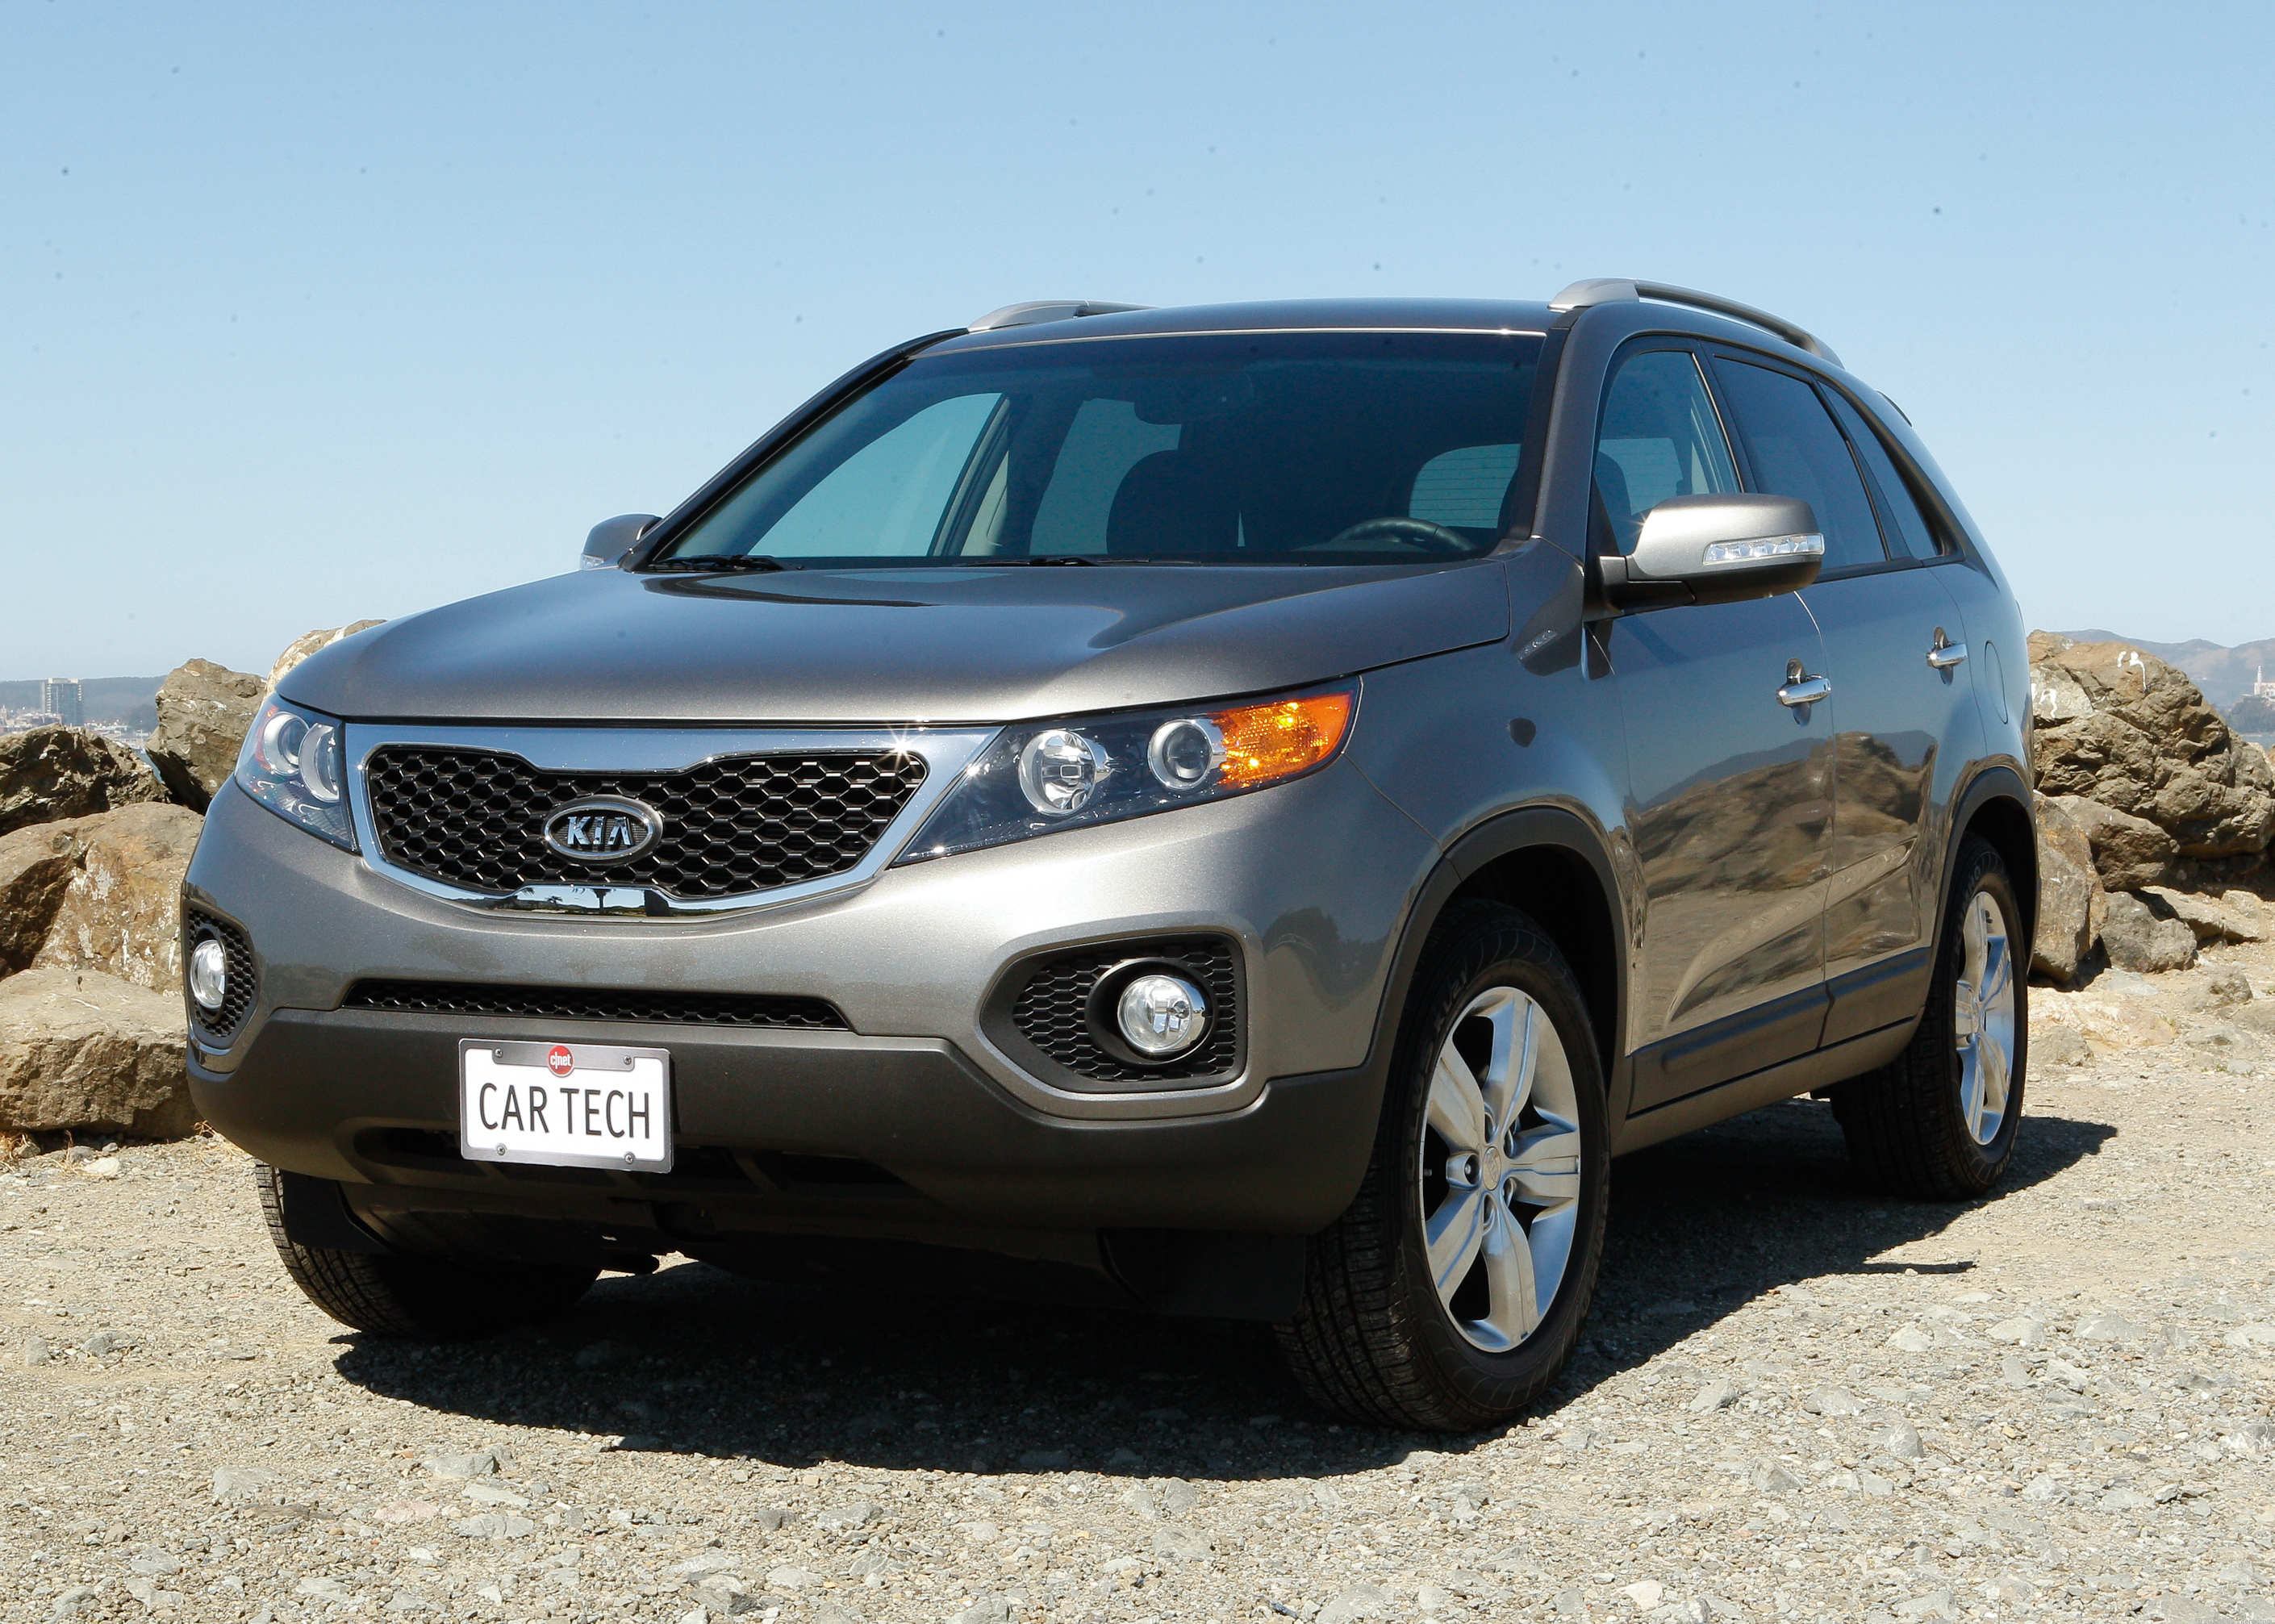 2012 Kia Sorento Ex Review Roadshow